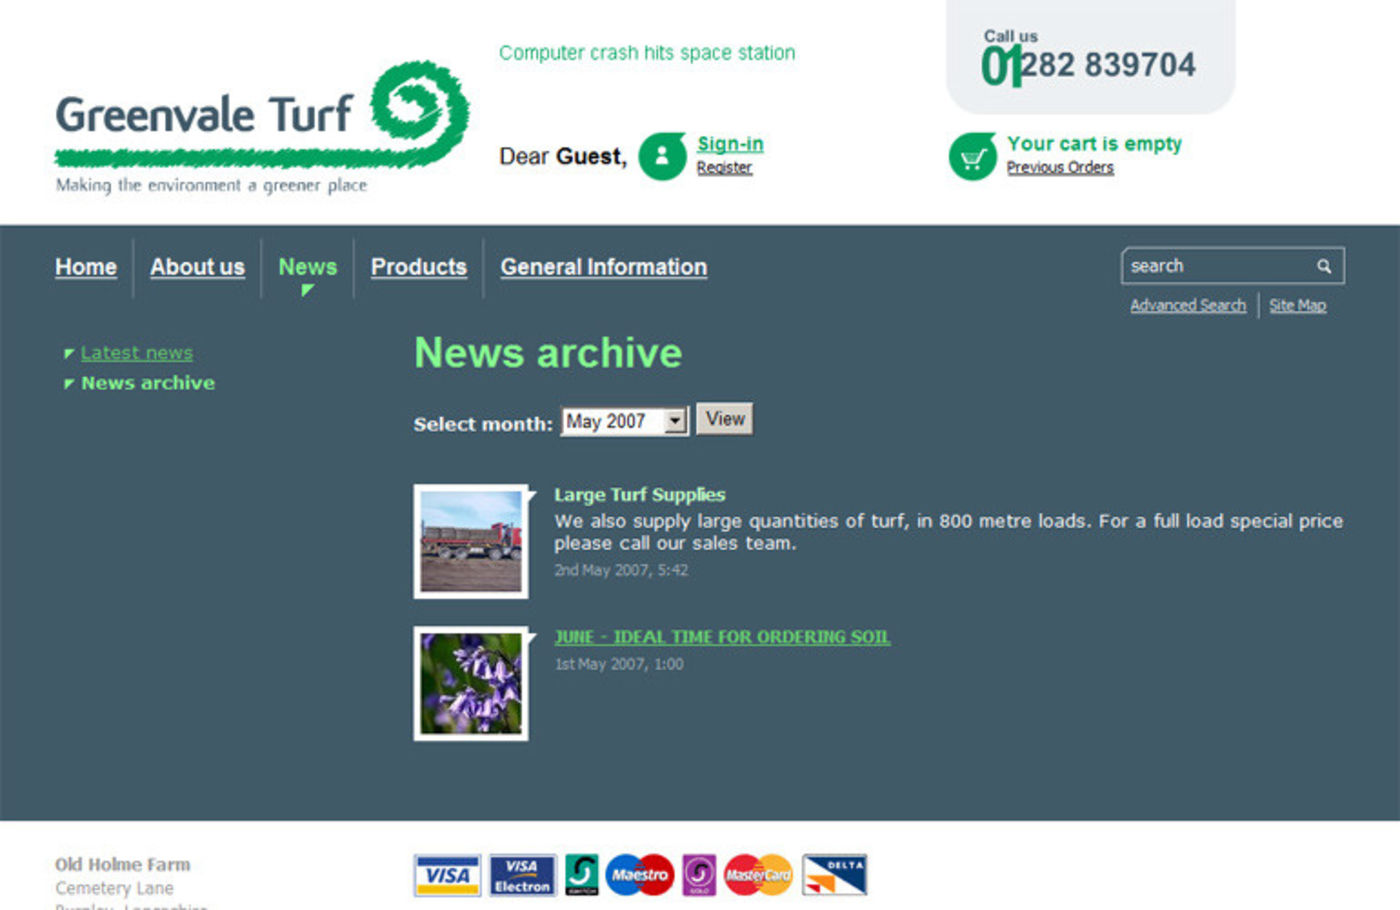 Greenvale Turf News archive